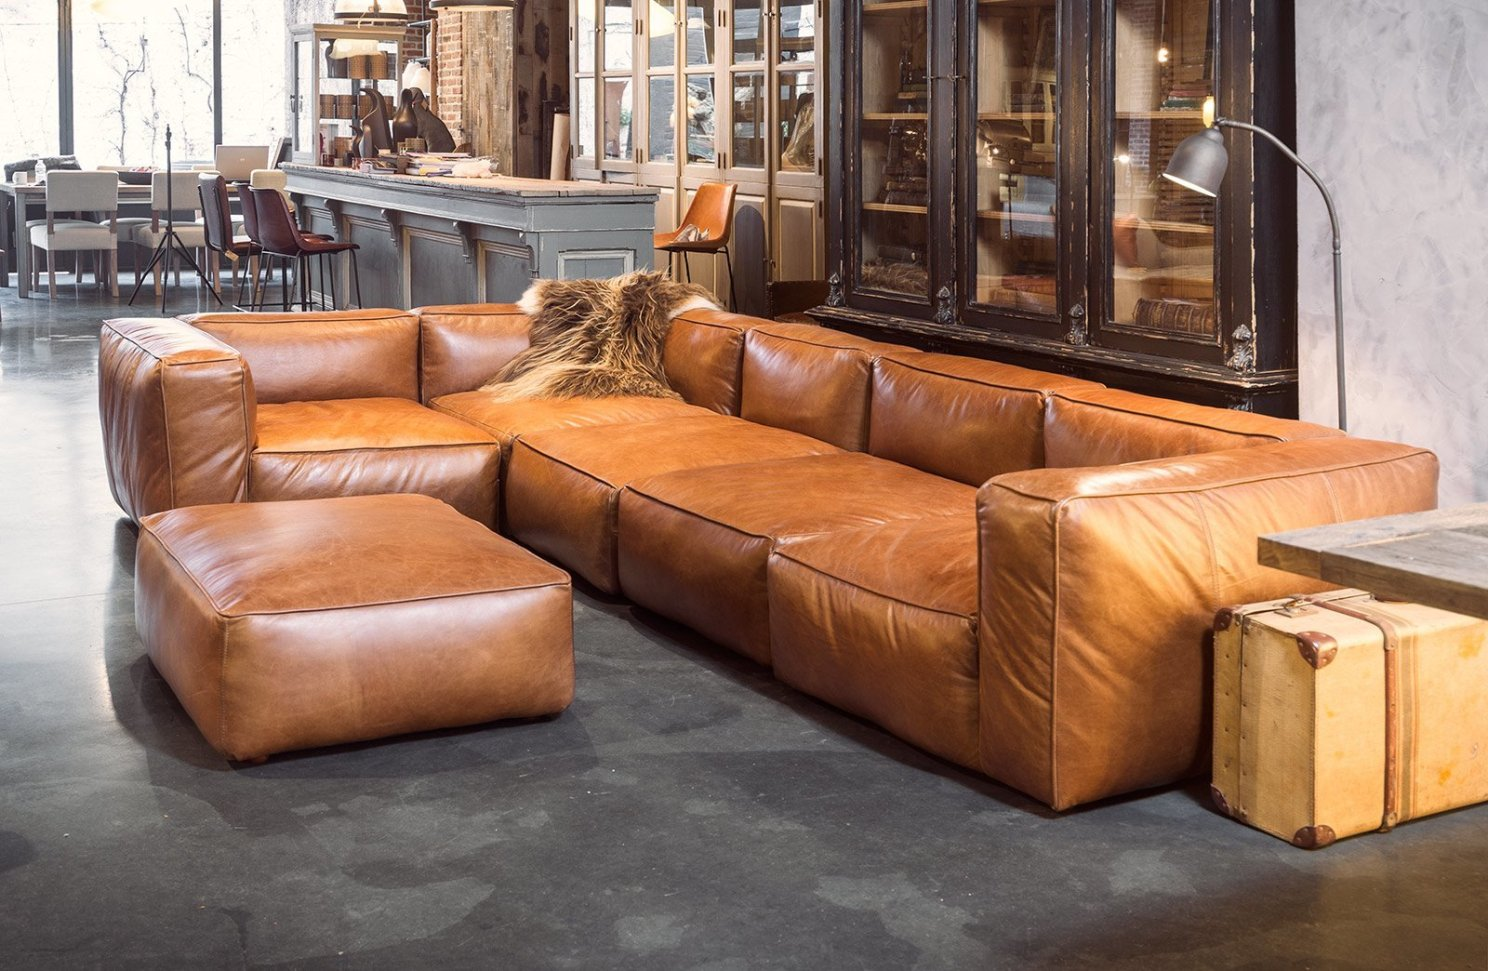 Ecksofa Eleonora Sofa Cognac Cognac Leather Sofa Model 2213 By B Rge